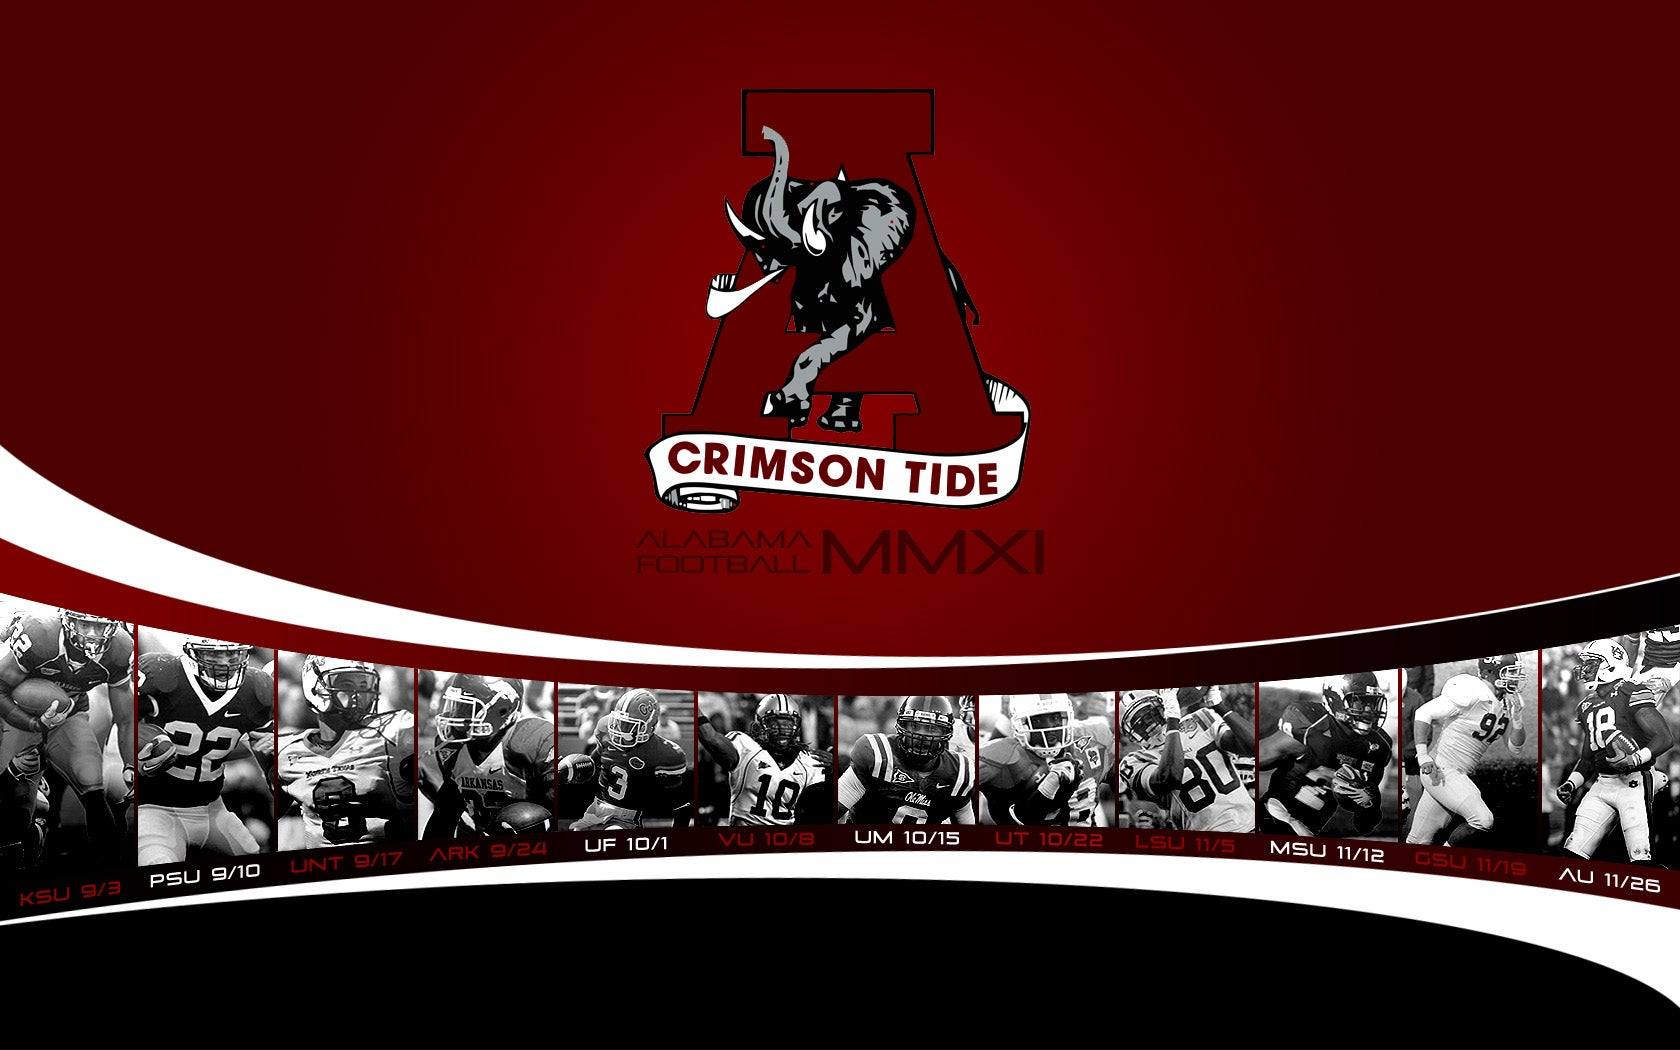 2012 Schedule Wallpapers added 42712